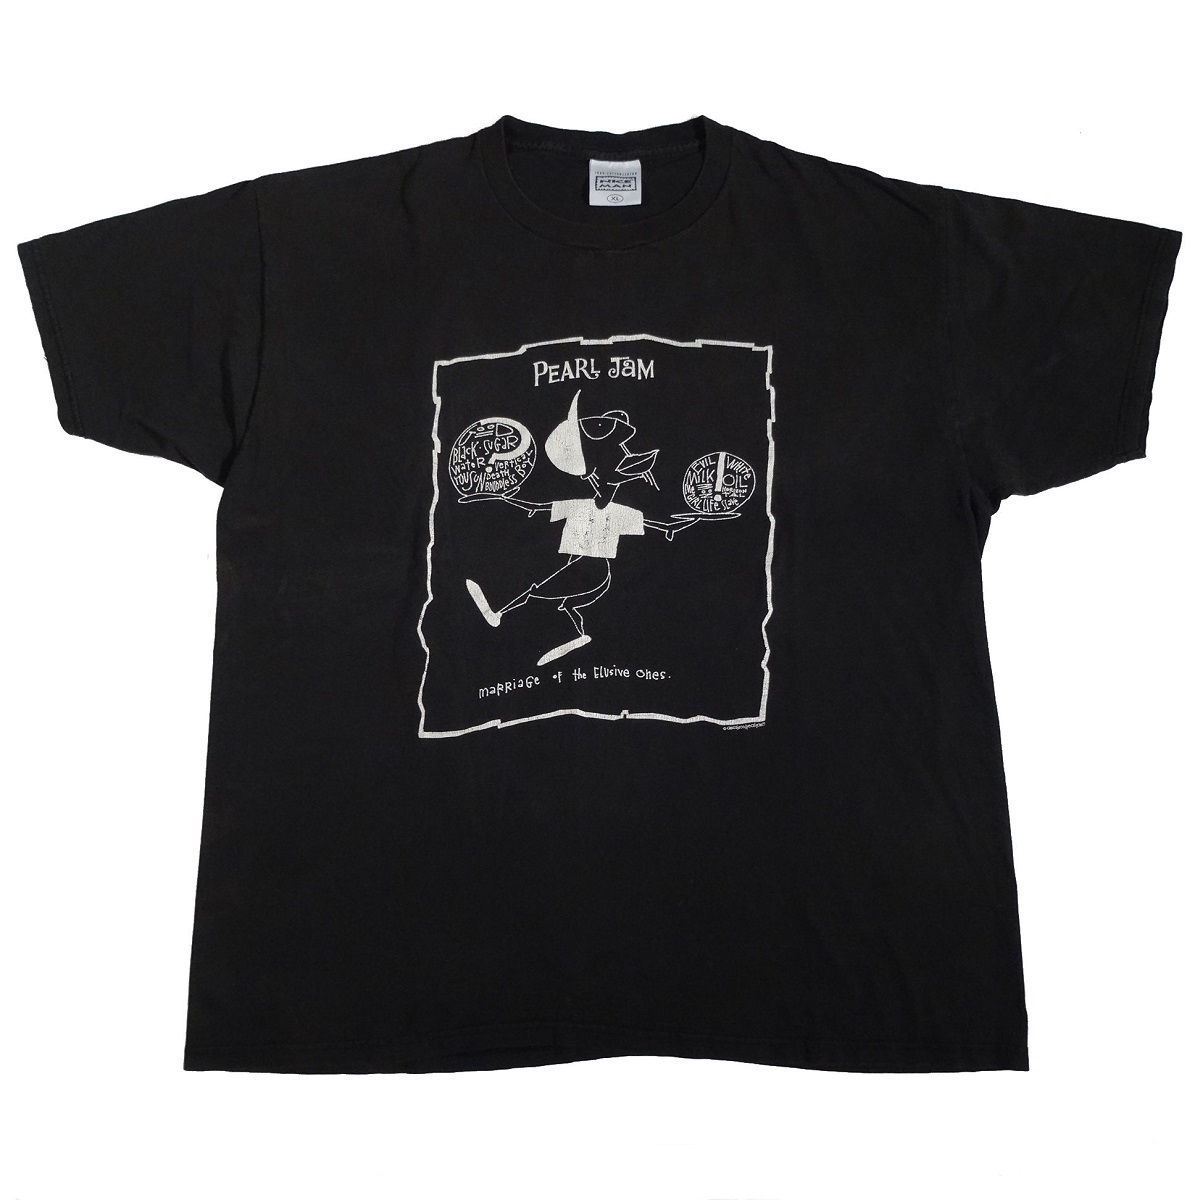 pearl jam boundless vintage 90s t shirt front of shirt